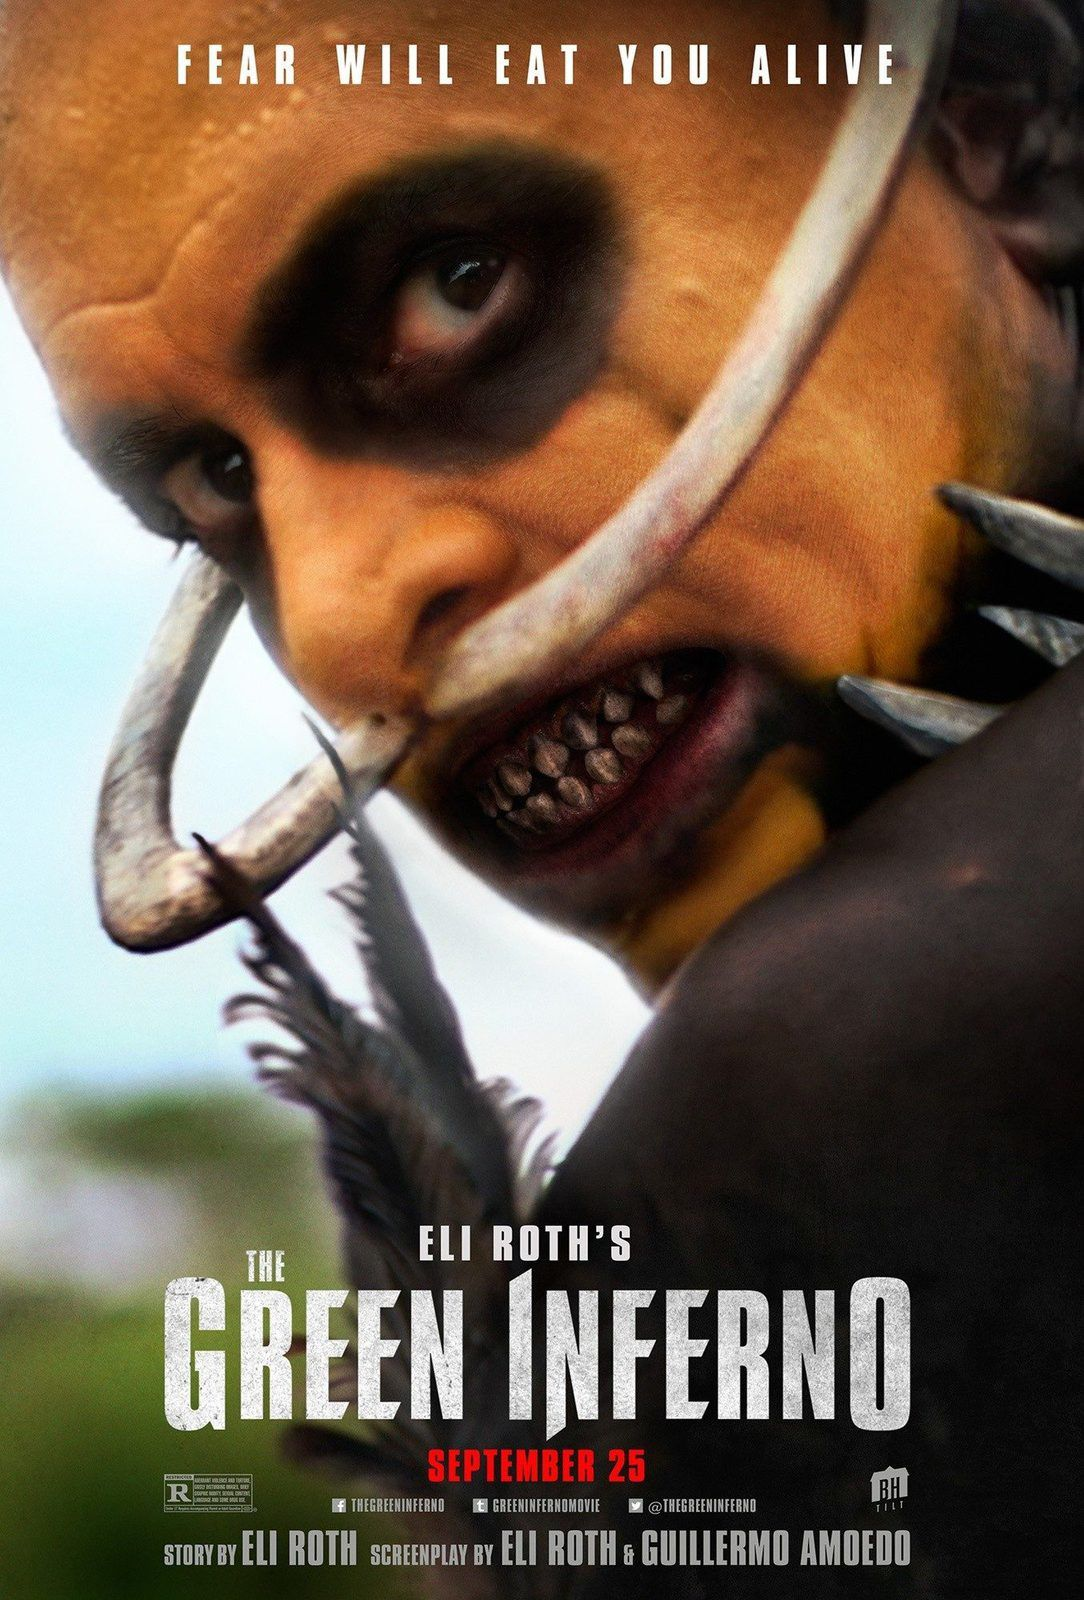 ob_327605_the-green-inferno-poster02.jpg (693×1024)